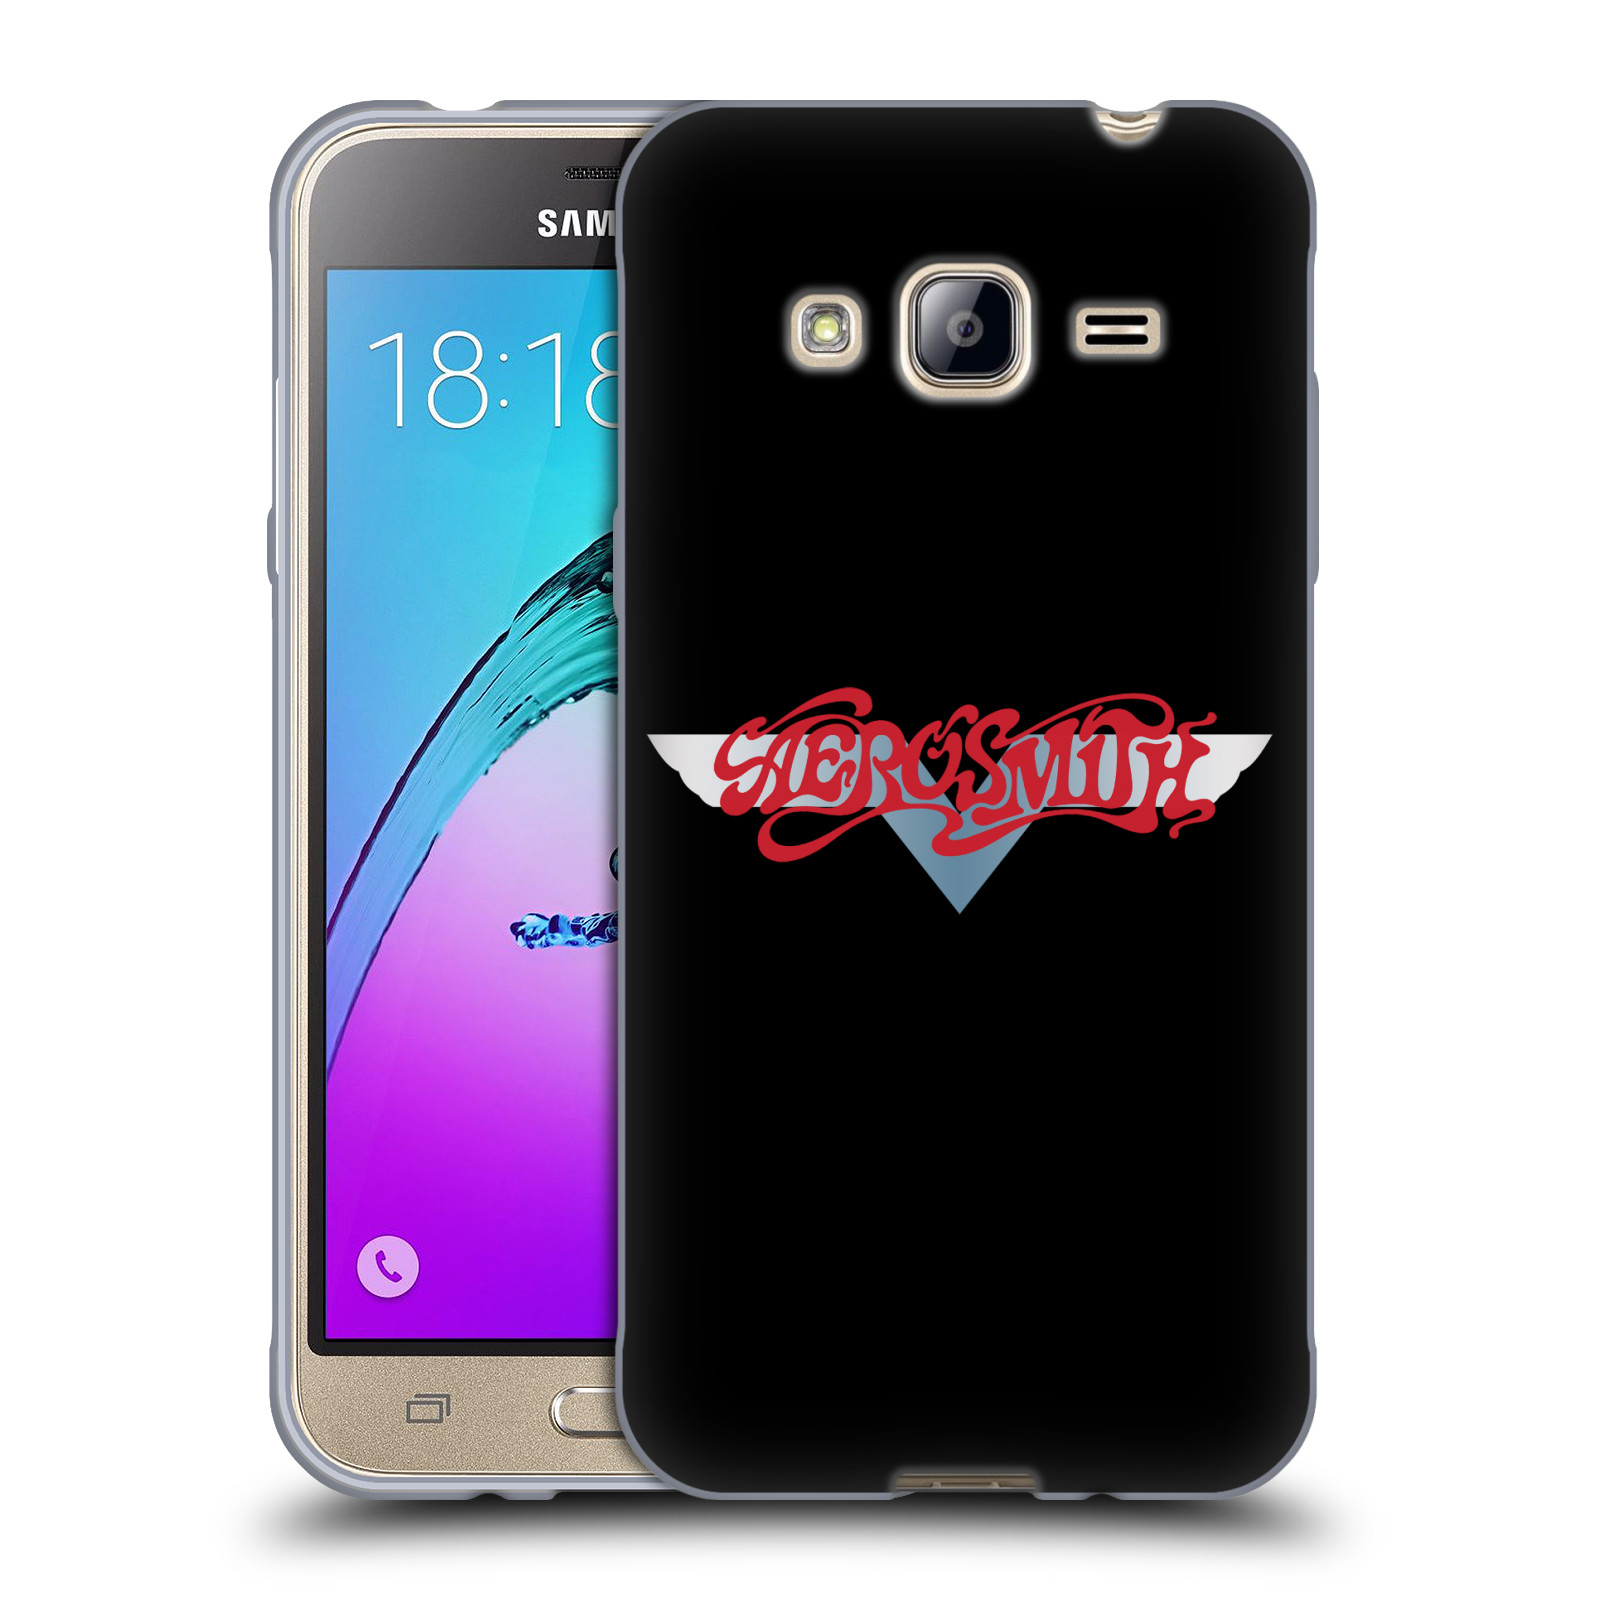 OFFICIEL-AEROSMITH-LOGOS-2-ETUI-COQUE-EN-GEL-MOLLE-POUR-SAMSUNG-TELEPHONES-3